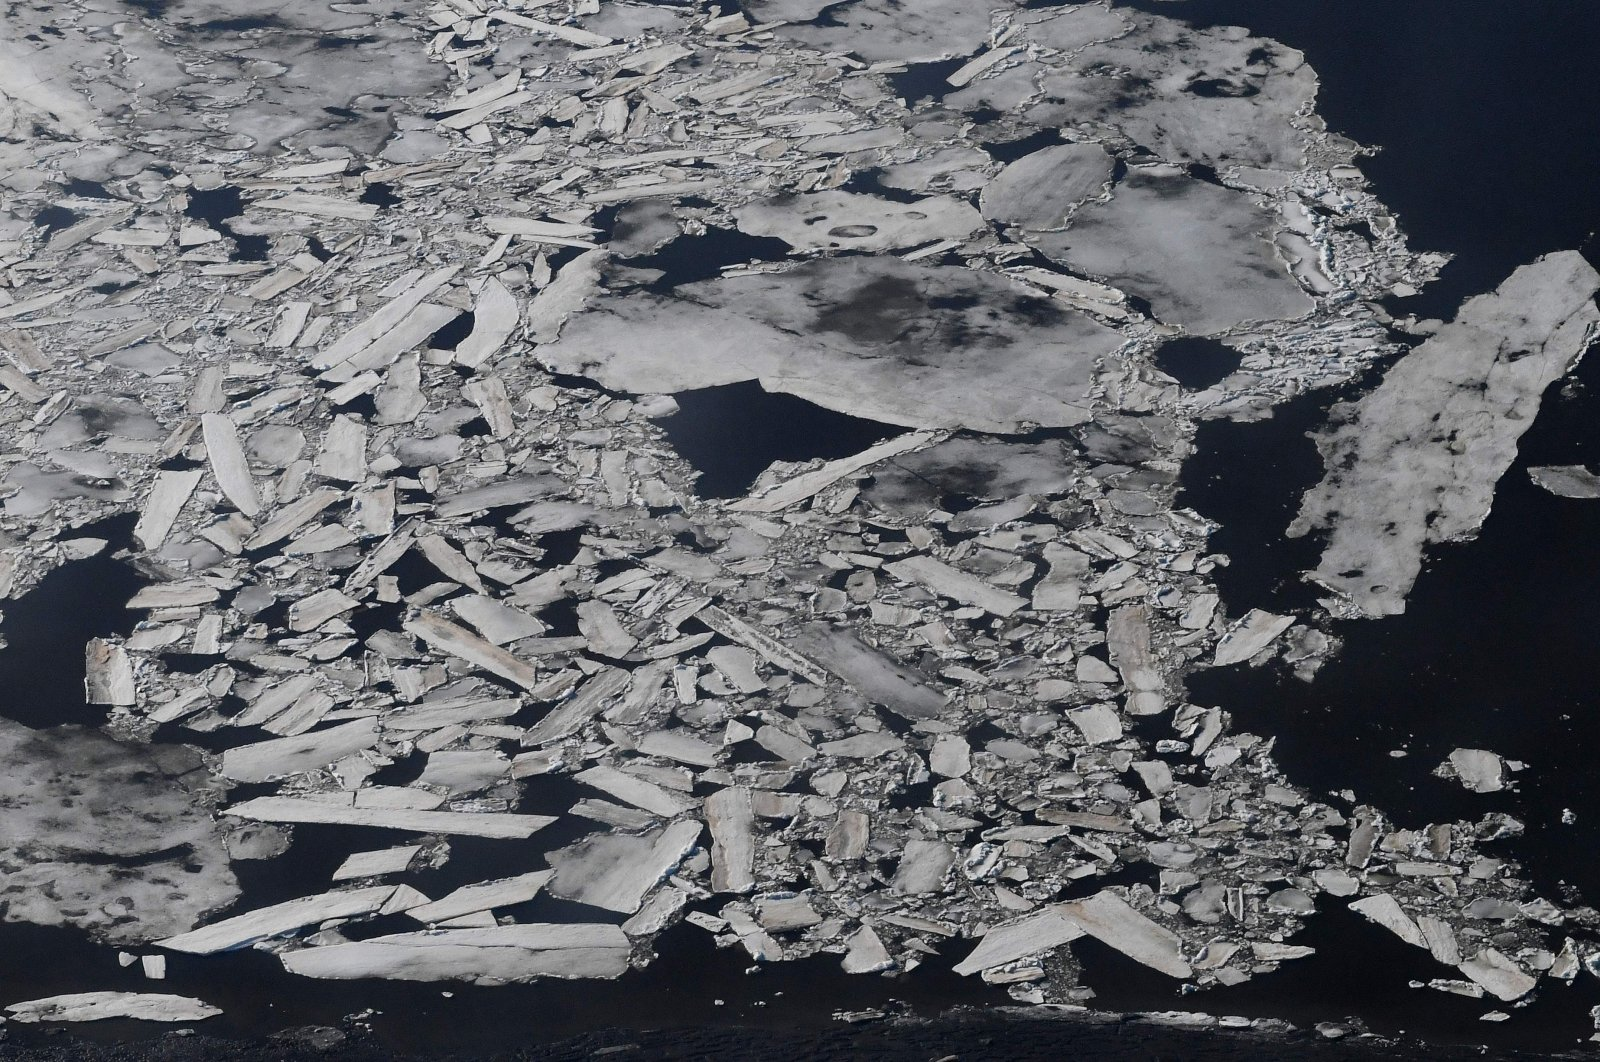 Ice breaks up early on the Kuskokwim River beside the Bering Sea and near the climate change-affected Yupik Eskimo village of Quinhagak on the Yukon Delta in Alaska, April 12, 2019. (AFP Photo)